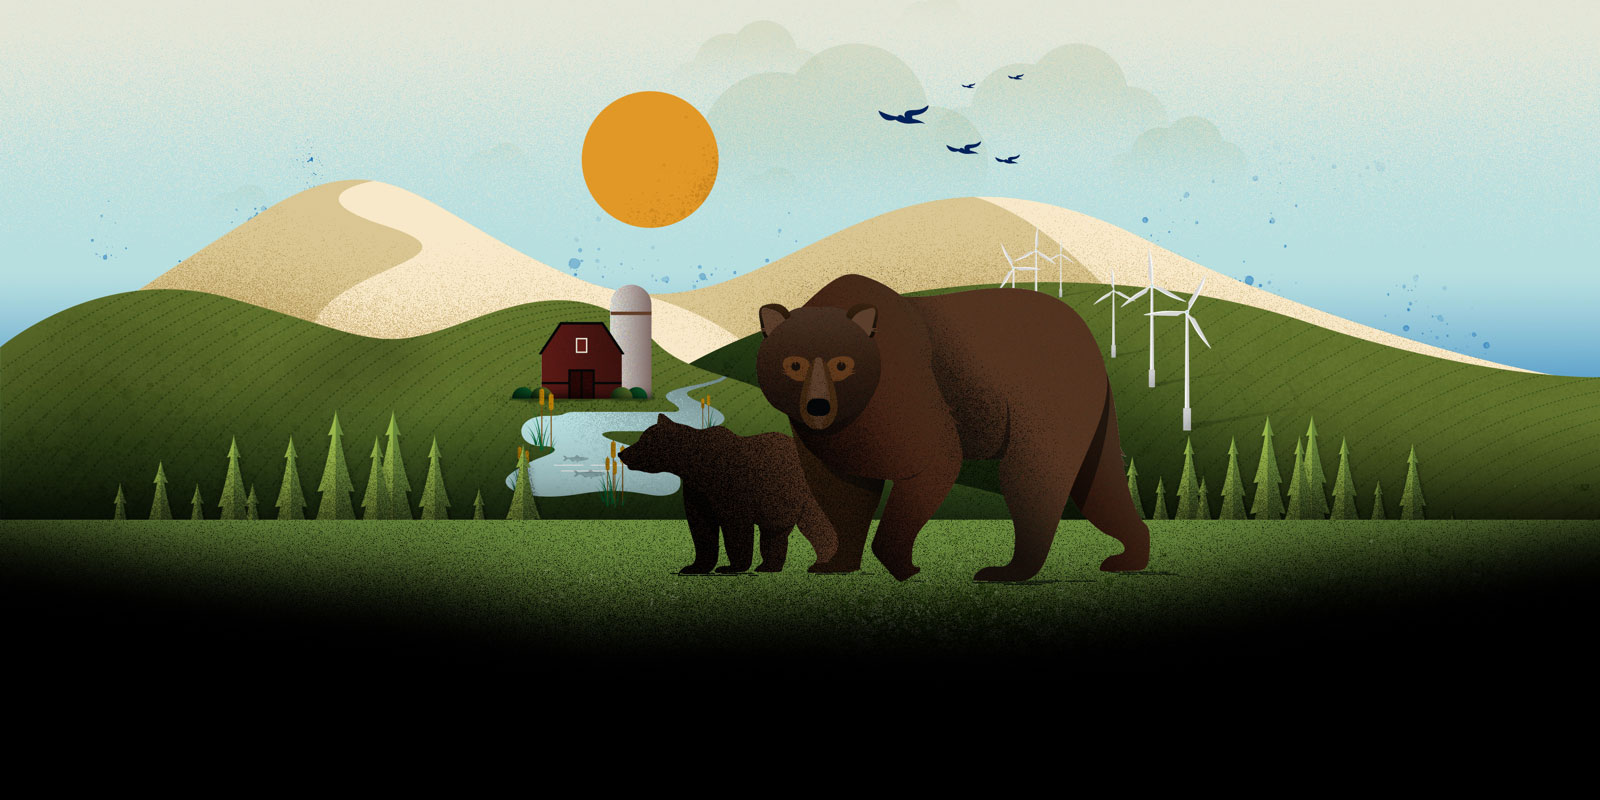 Graphic design illustration of brown bears crossing green pasture with hills, trees, a barn, wind turbines, and flying birds arranged in the background landscape.